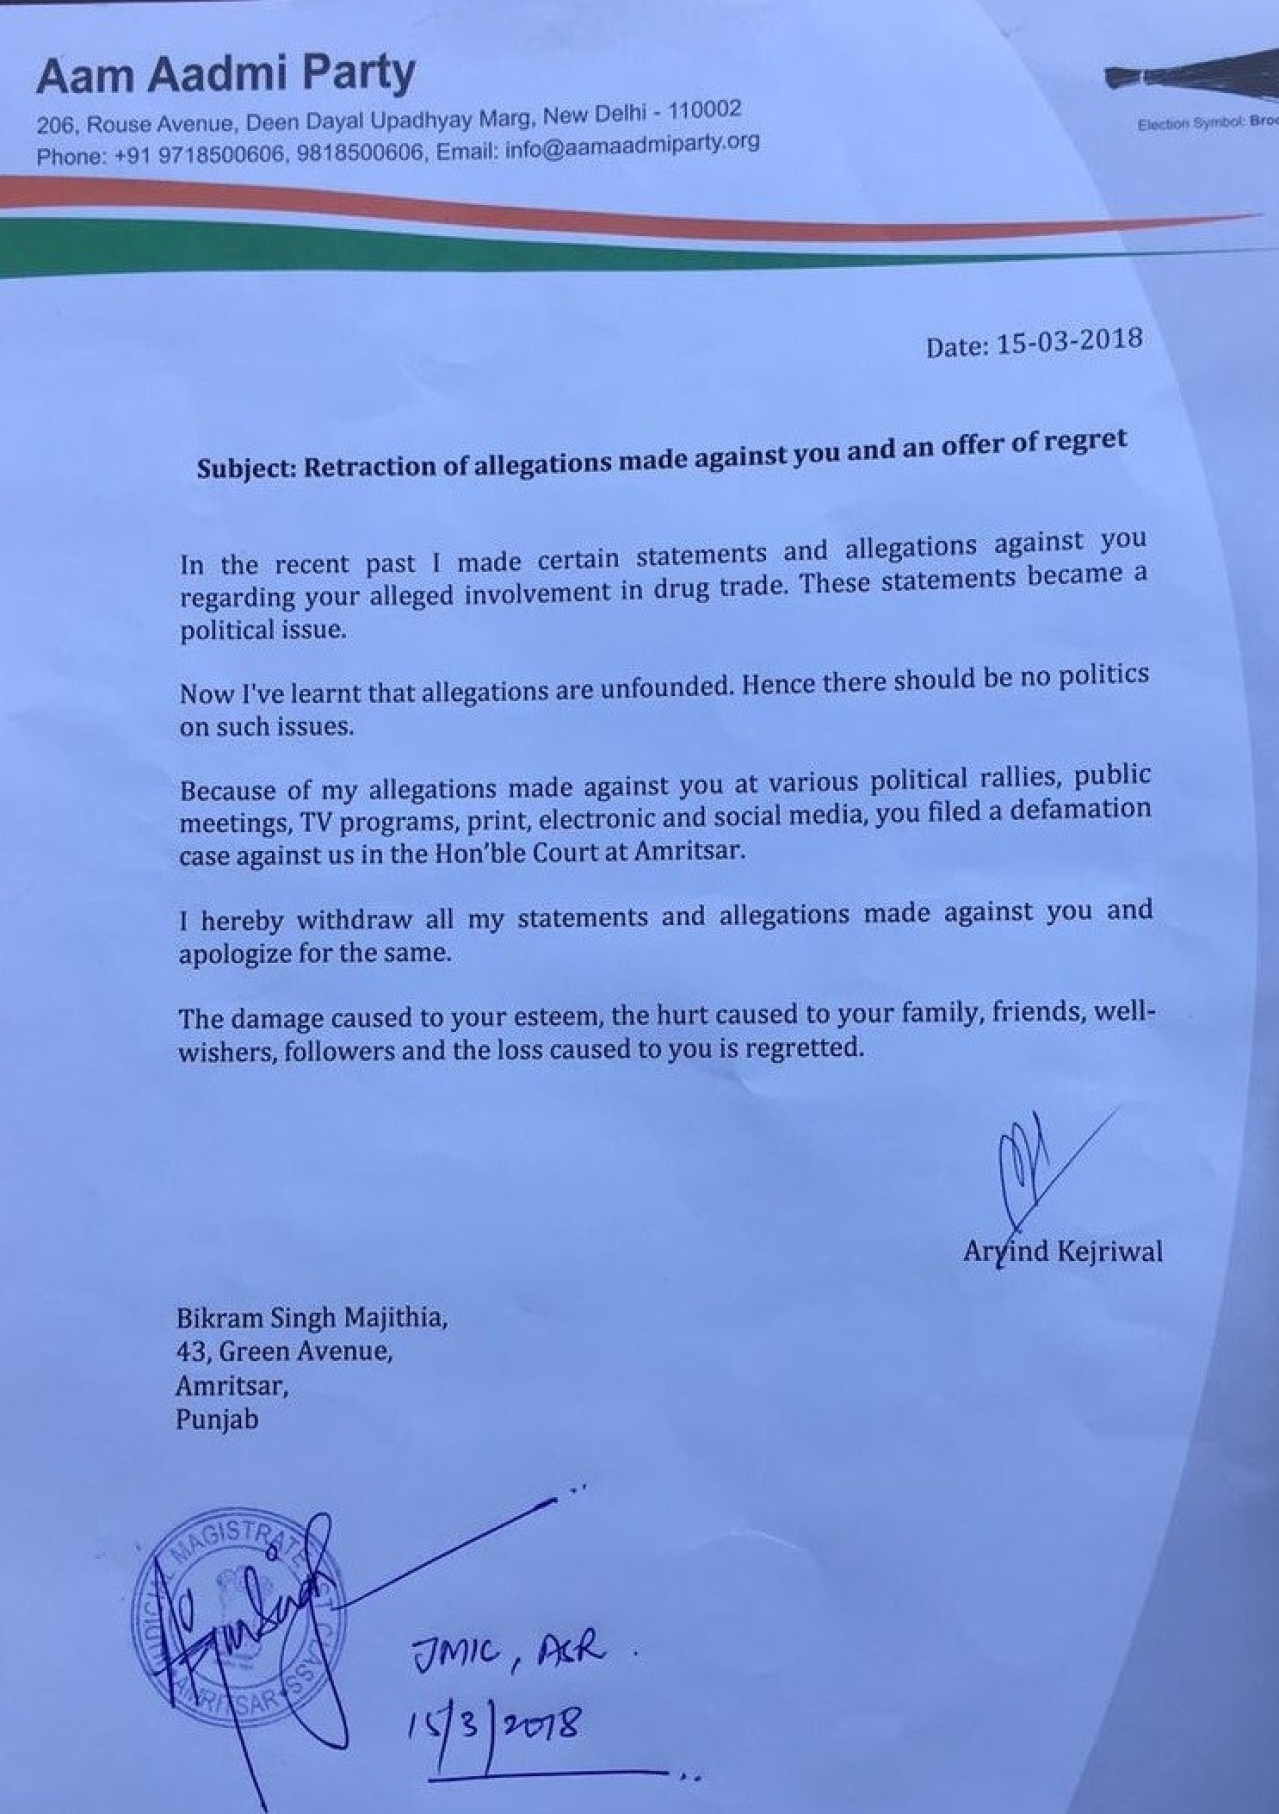 The apology letter issued by Kejriwal.